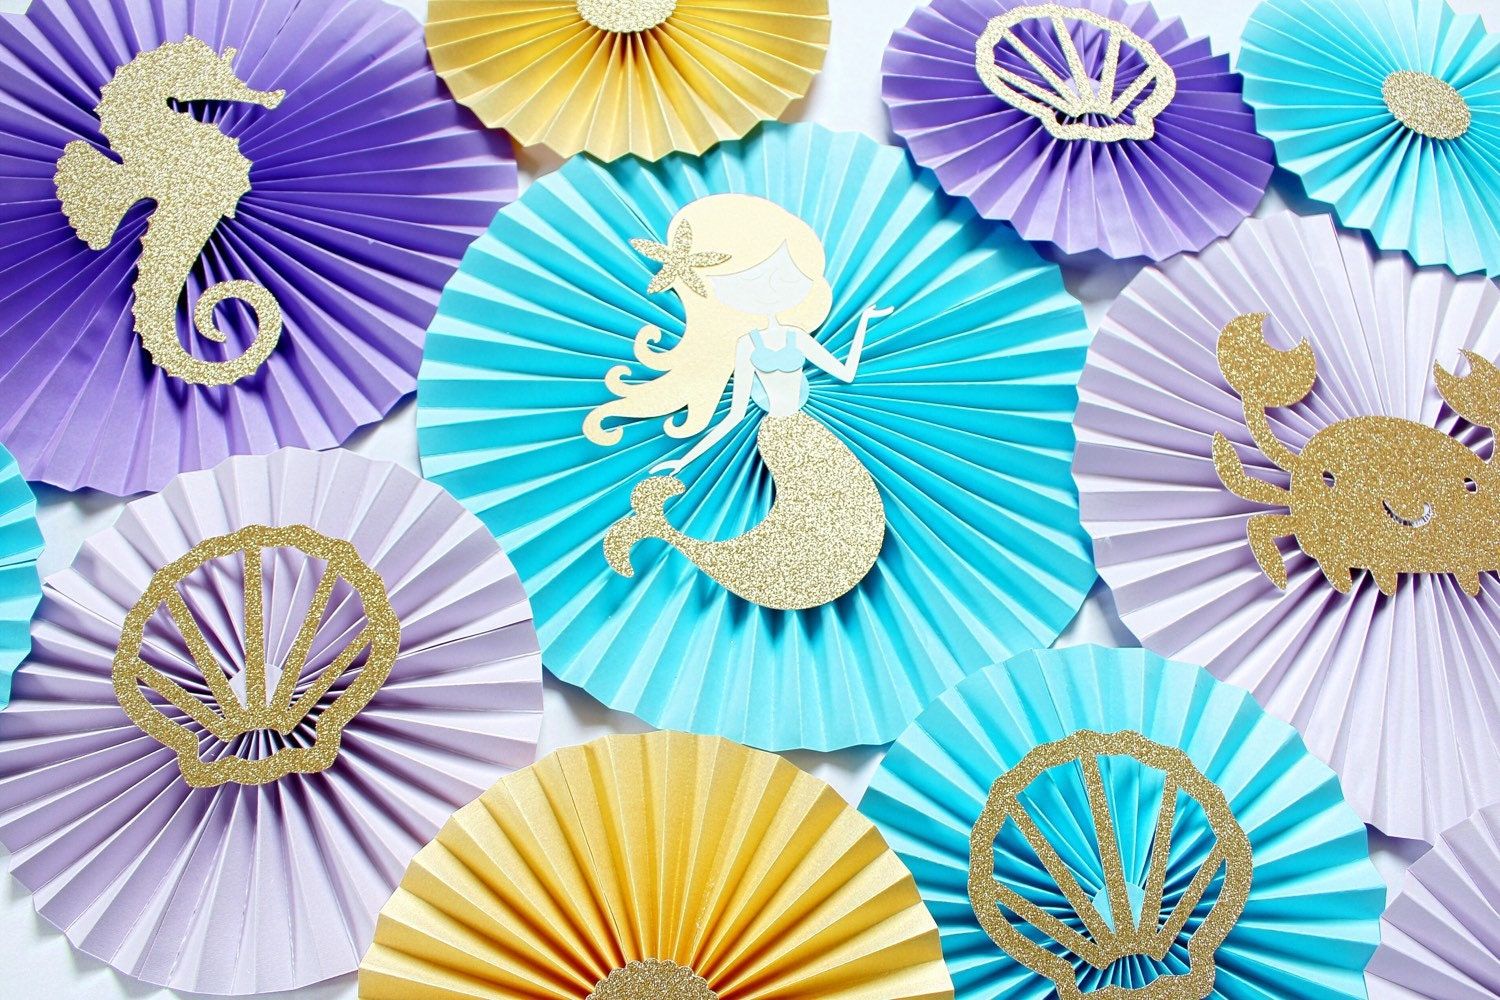 Mermaid Party Decorations Mermaid Decor Under the Sea